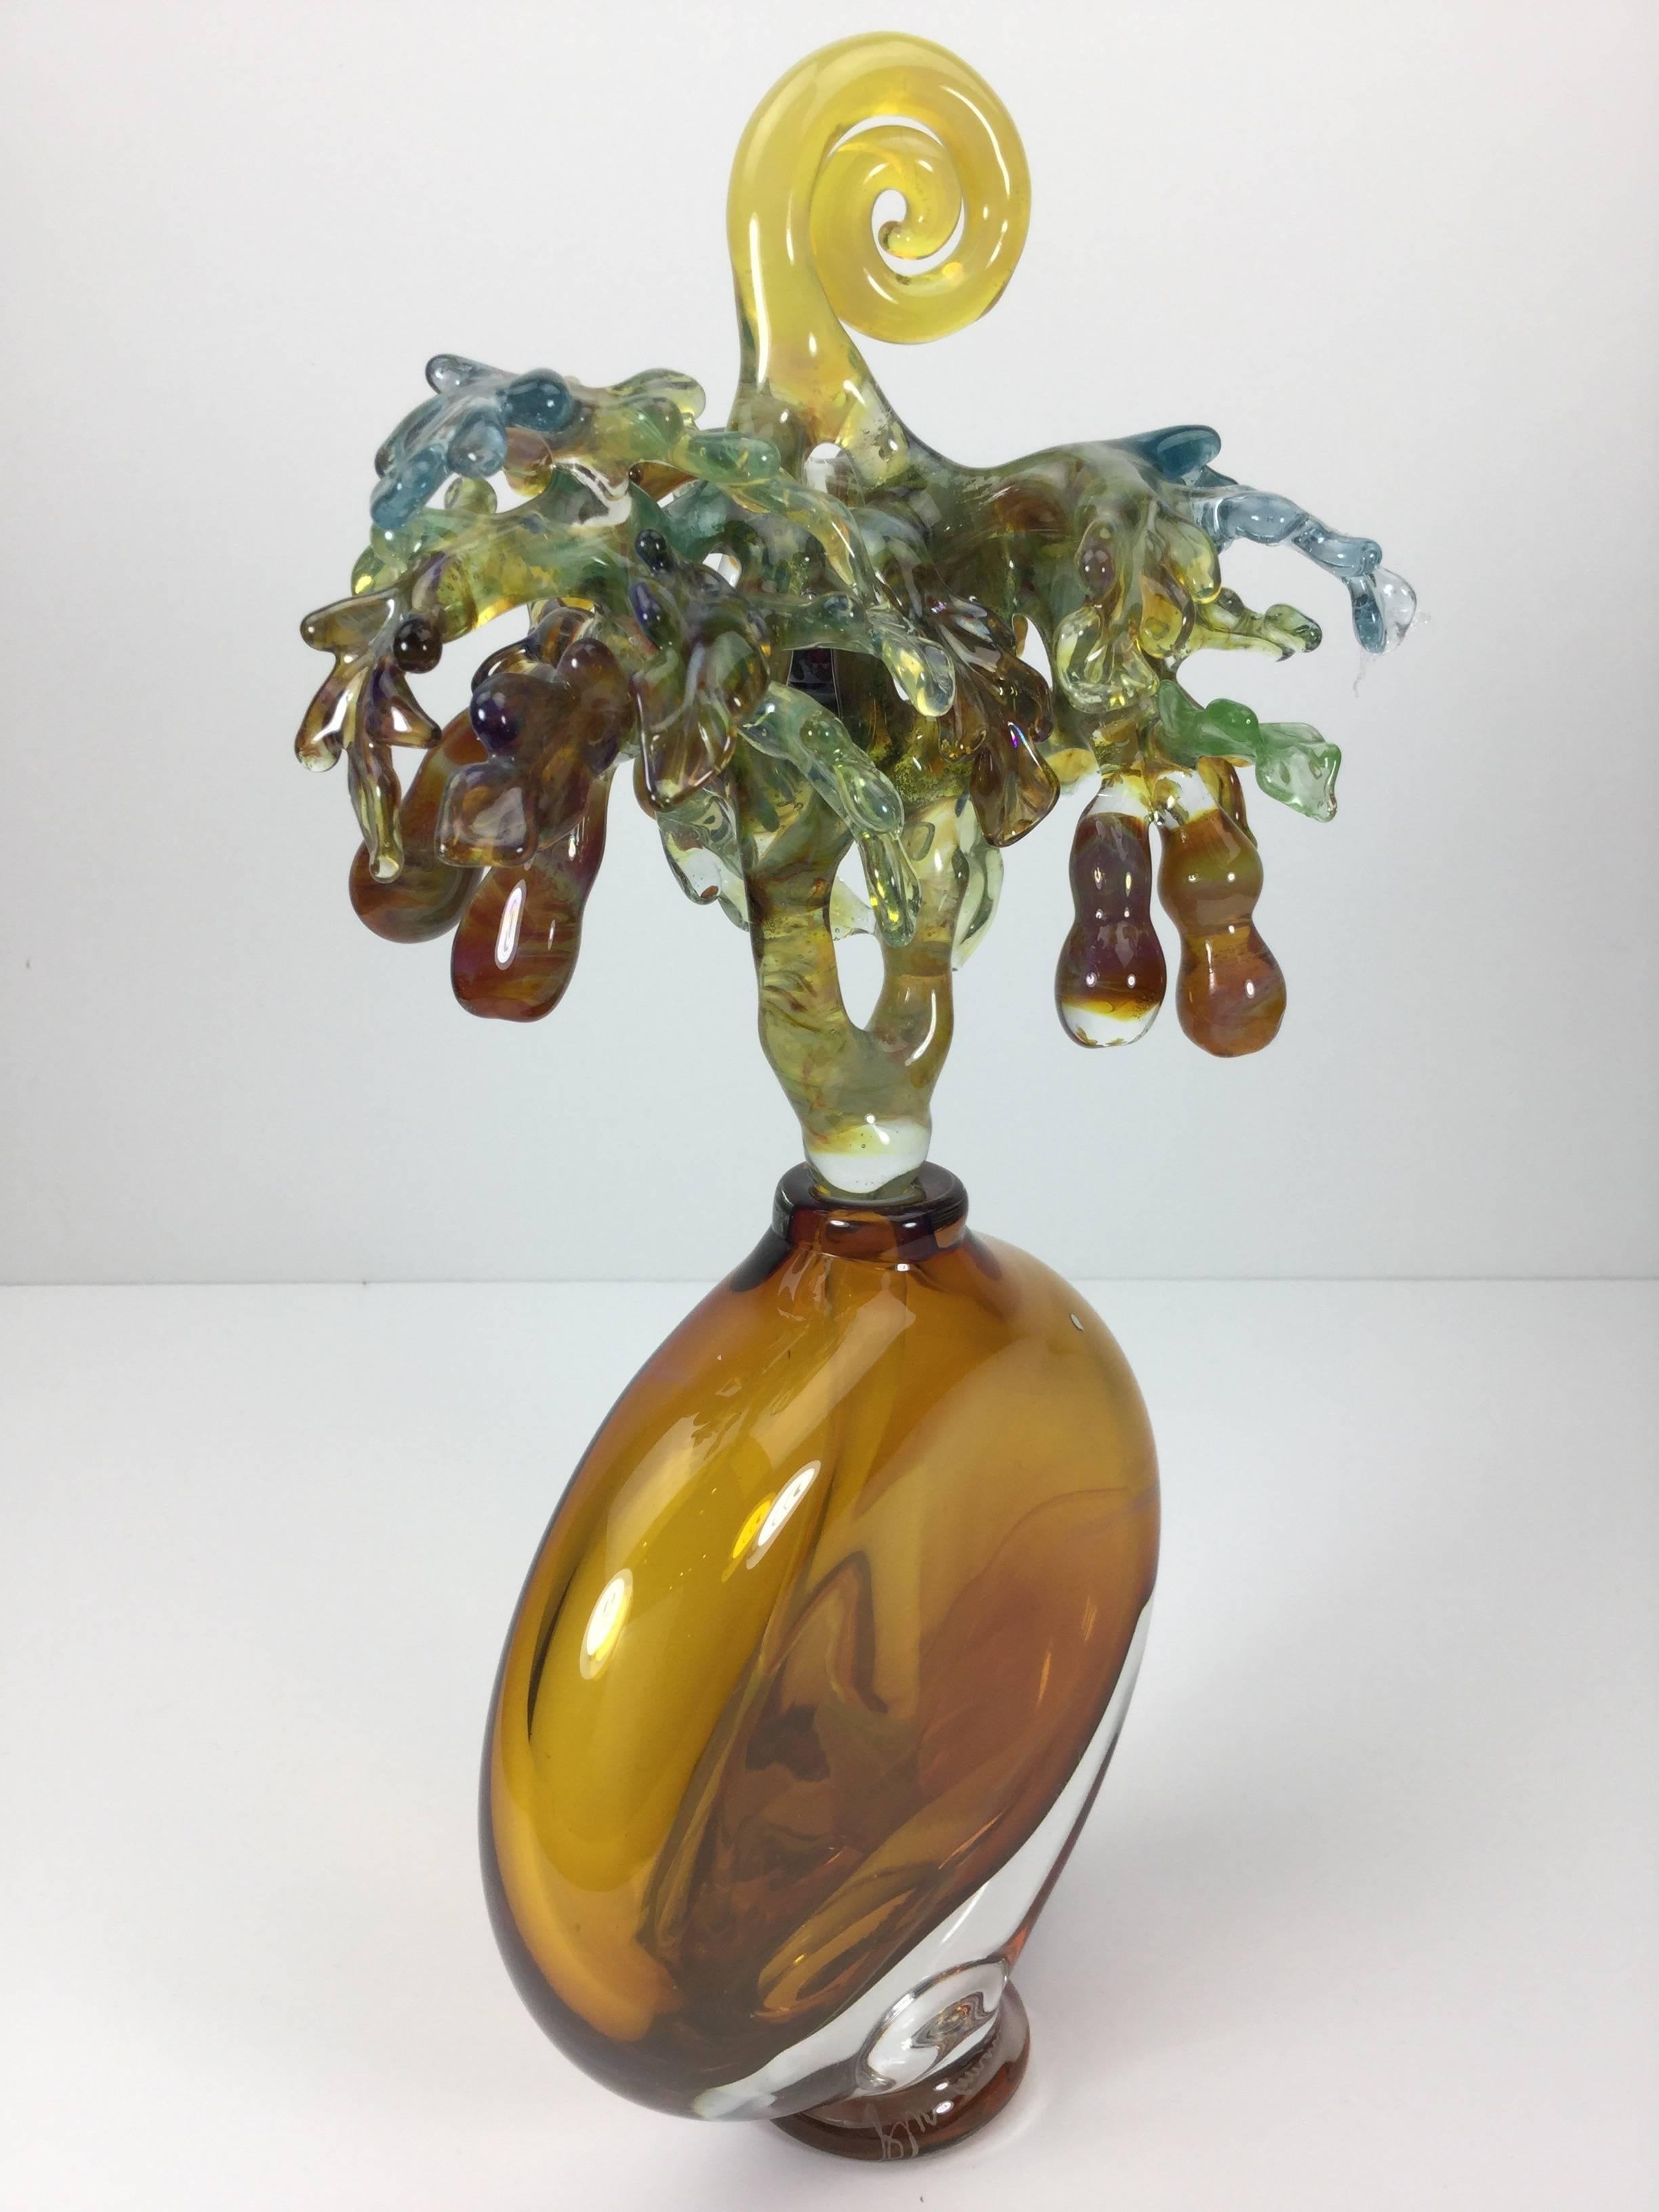 a74113fc Chihuly Style Huge Hand Blown Art Glass Perfume Bottle by Jean Amann.  1990's. For Sale at 1stdibs